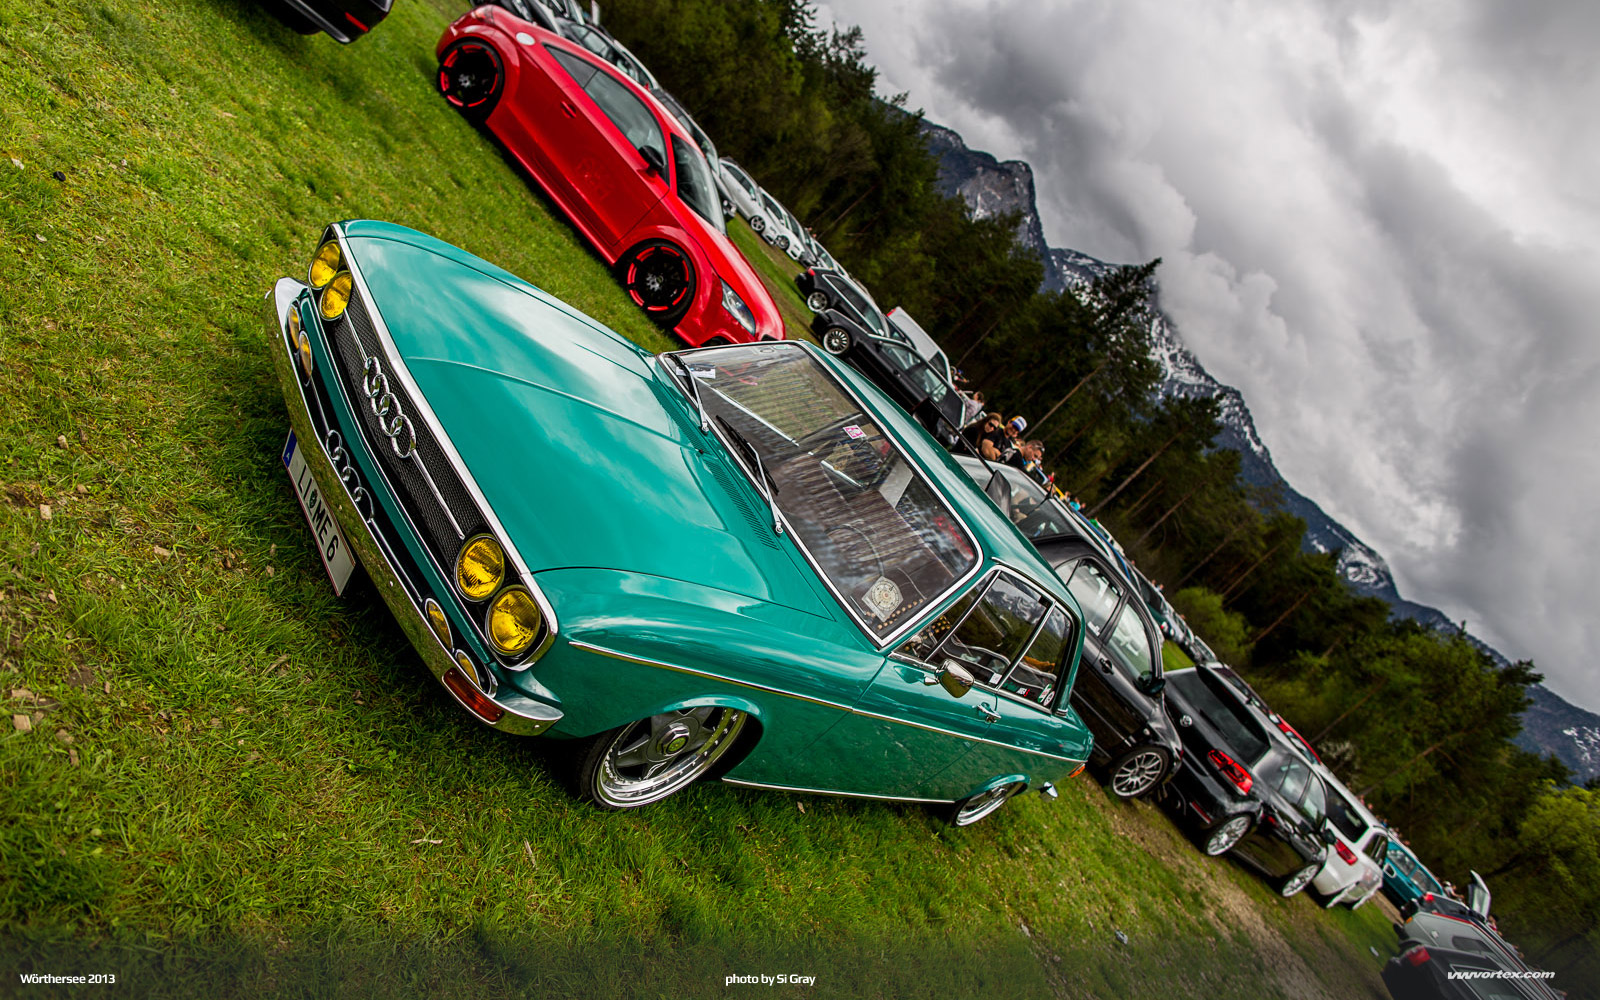 worthersee-2013-gallery-si-gray-040